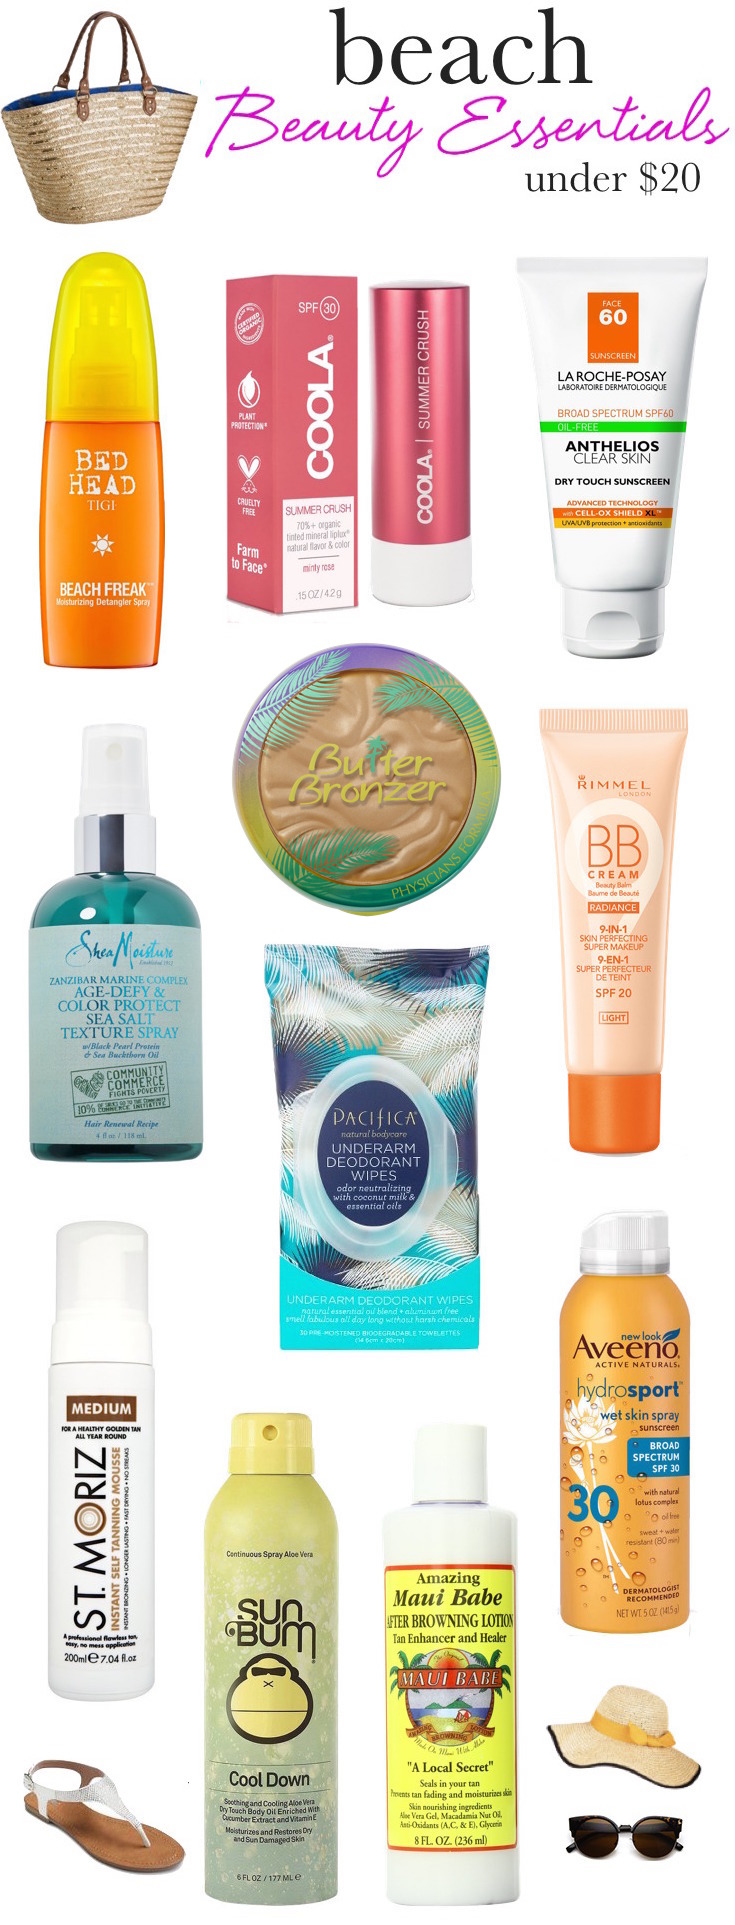 Whether you'll be lounging poolside or hitting the beach, throw these sweat-proof, frizz-busting summer beauty essentials in your tote to keep your skin, hair and makeup in top shape...and they're all under $  20!